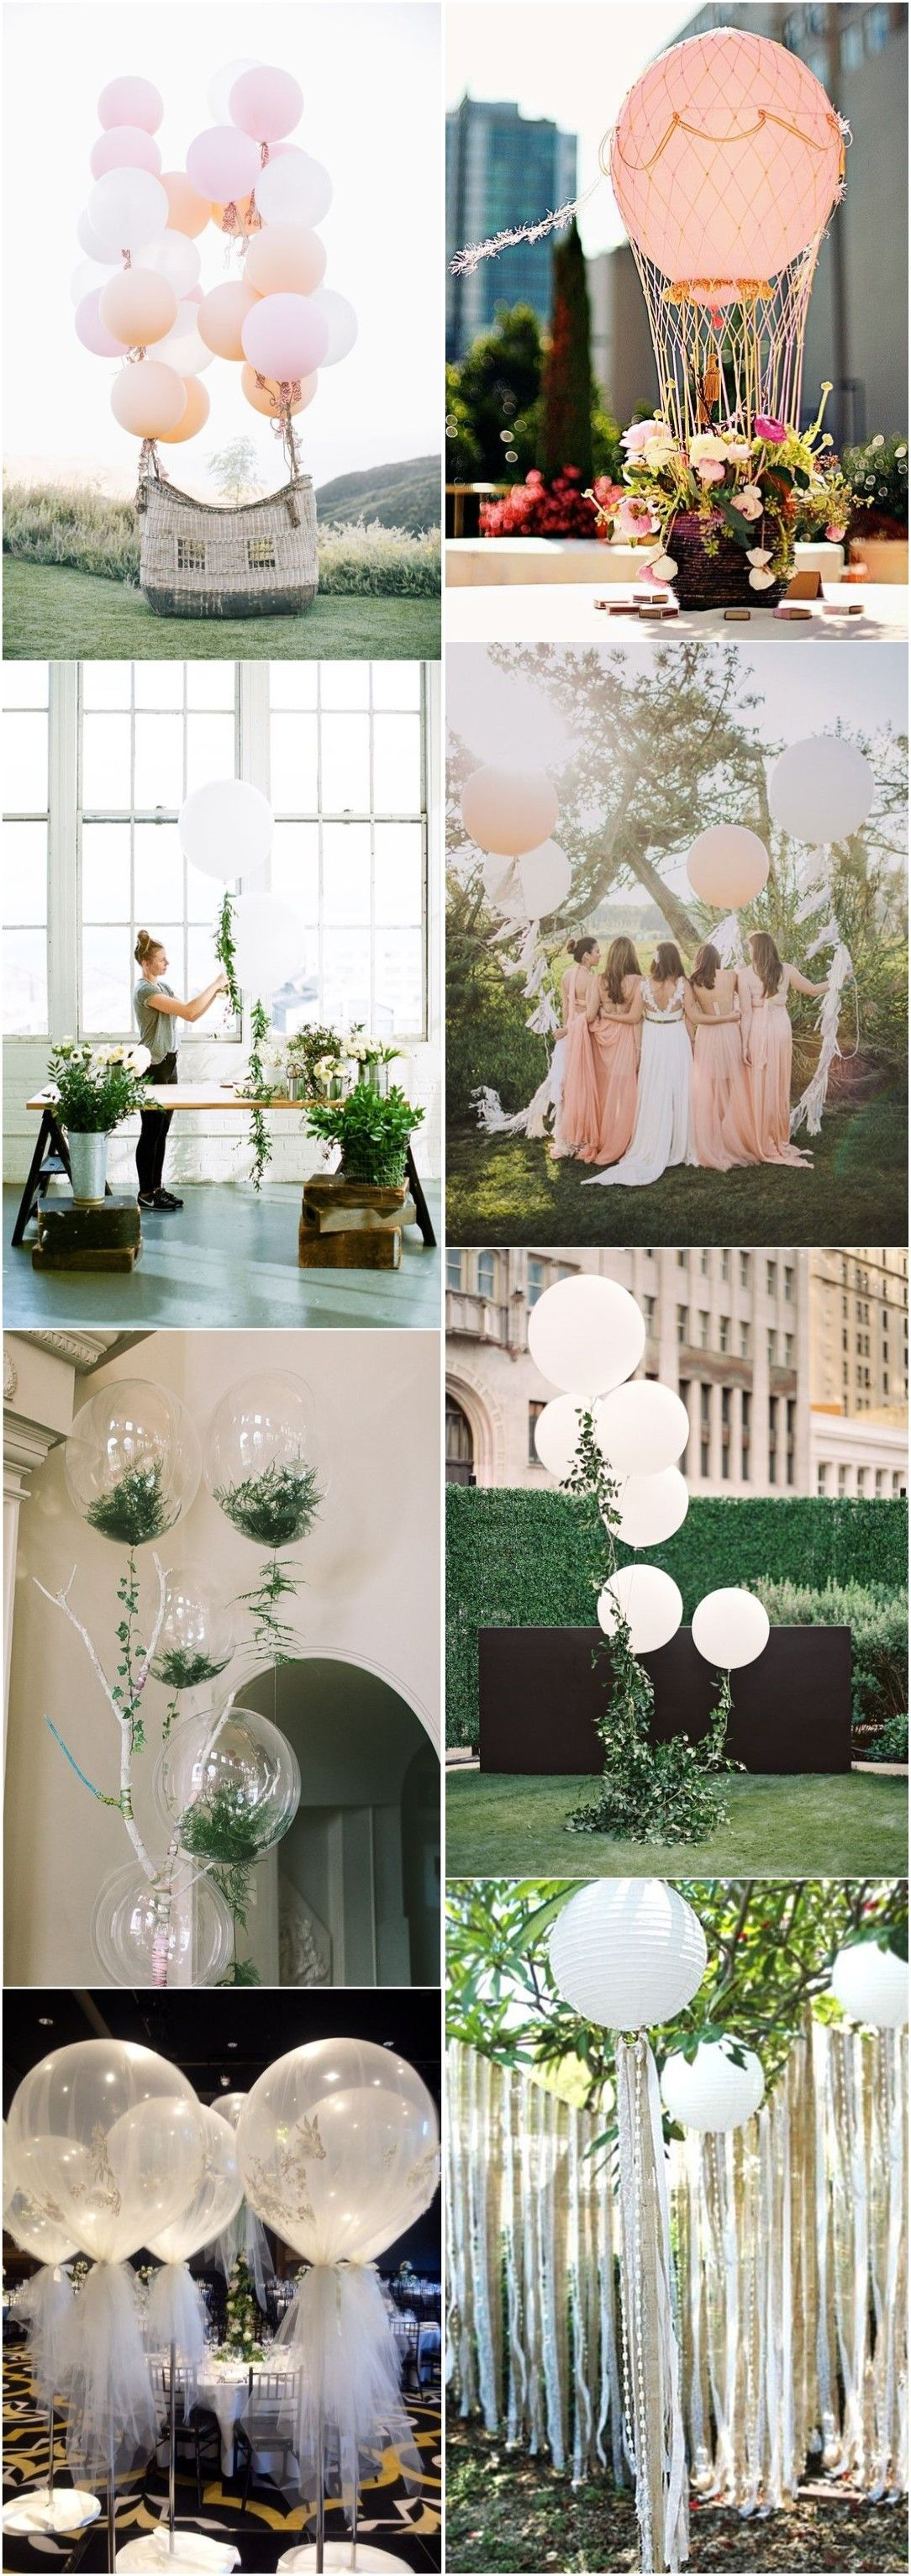 Wedding decoration ideas with balloons   Fun and Creative Balloon Wedding Decoration Ideas  Decoration